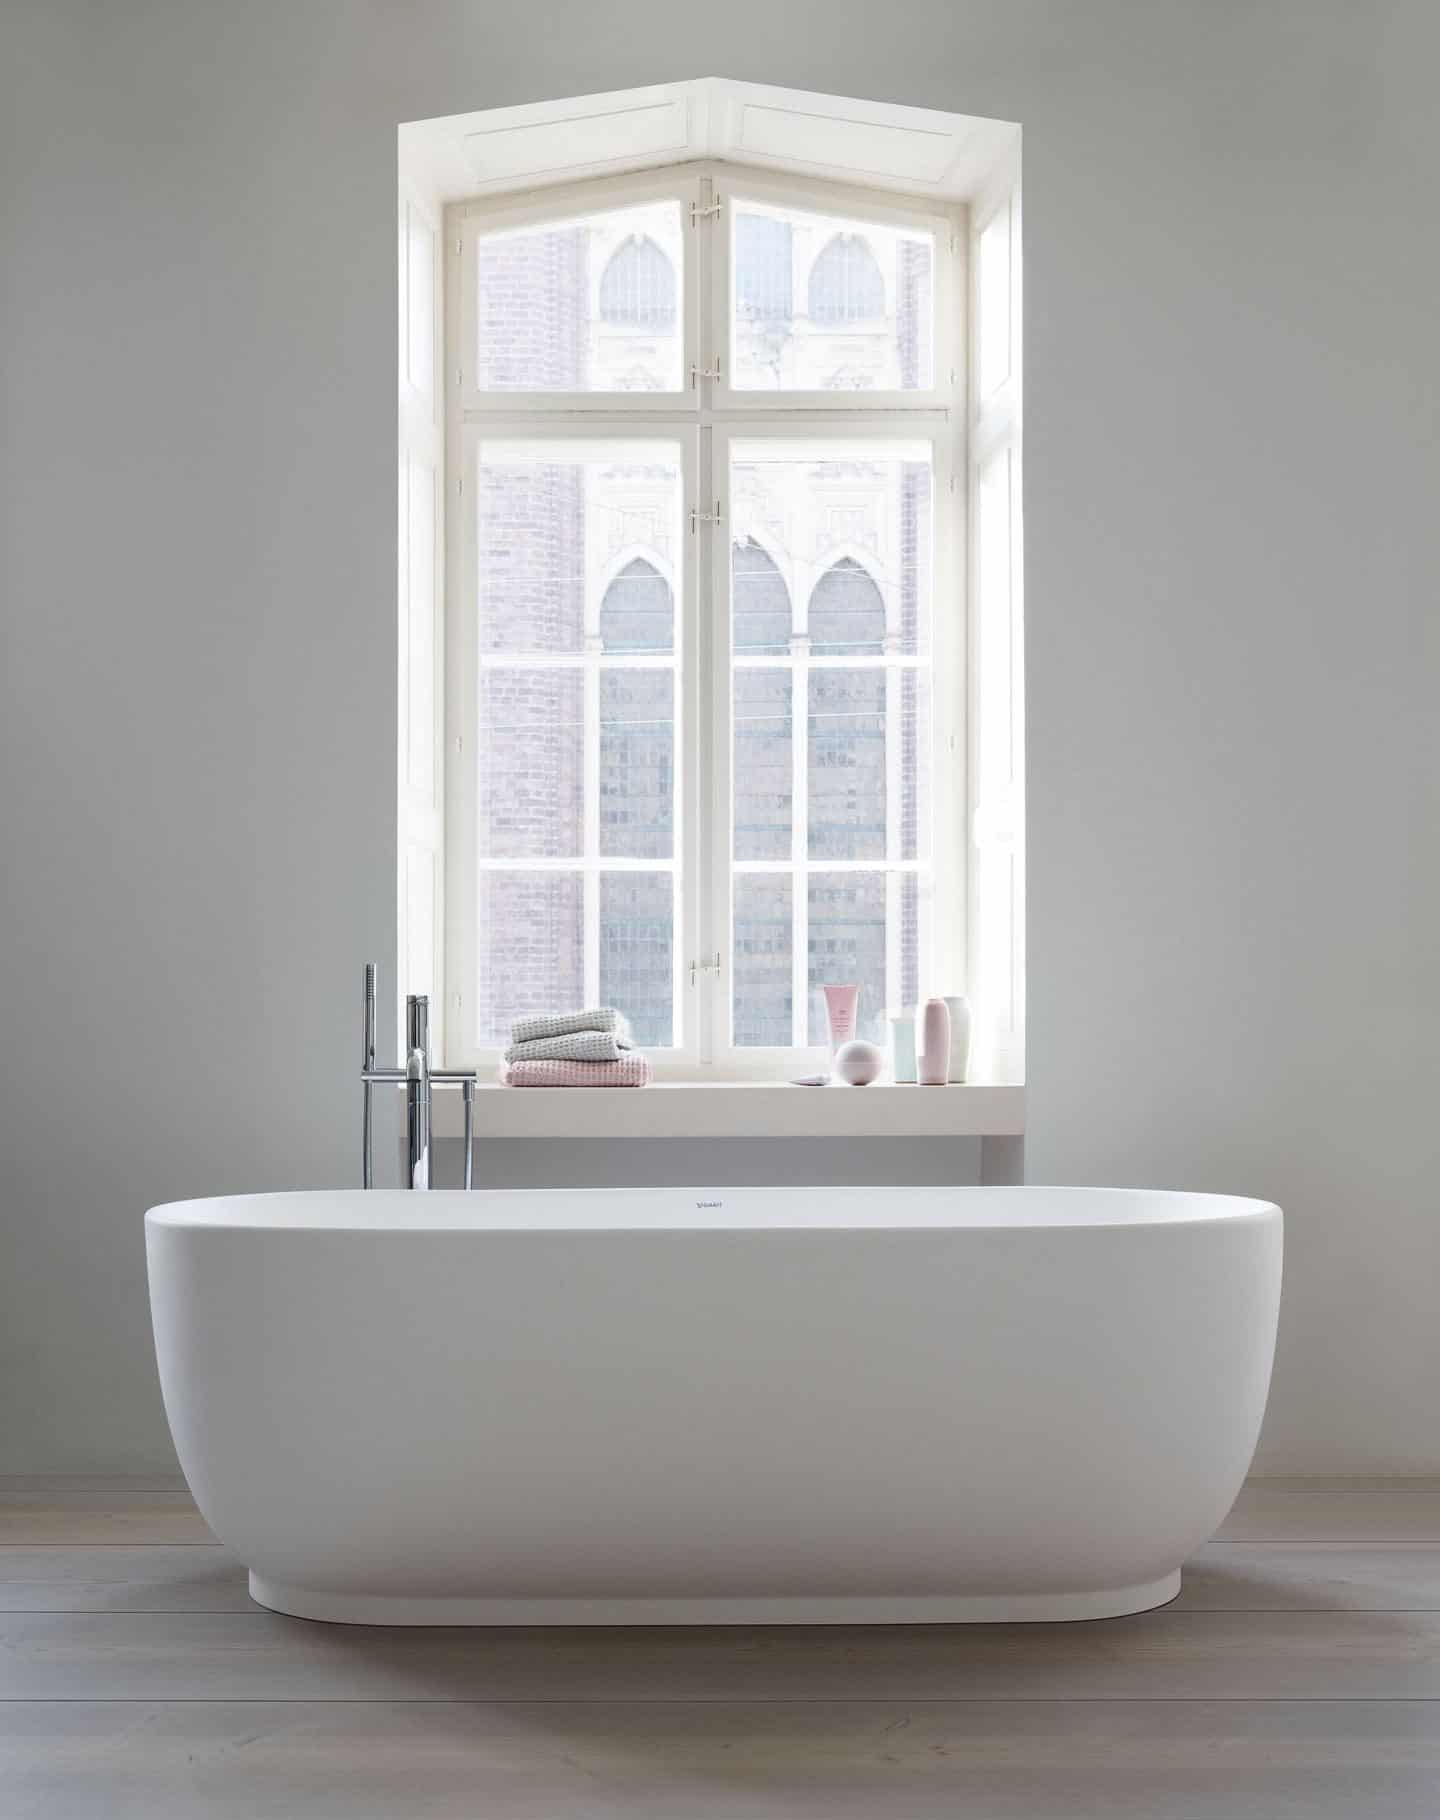 A freestanding bathtub infront of a large window. Bathtub from the Luv collection by luxury bathroom brand Duravit.